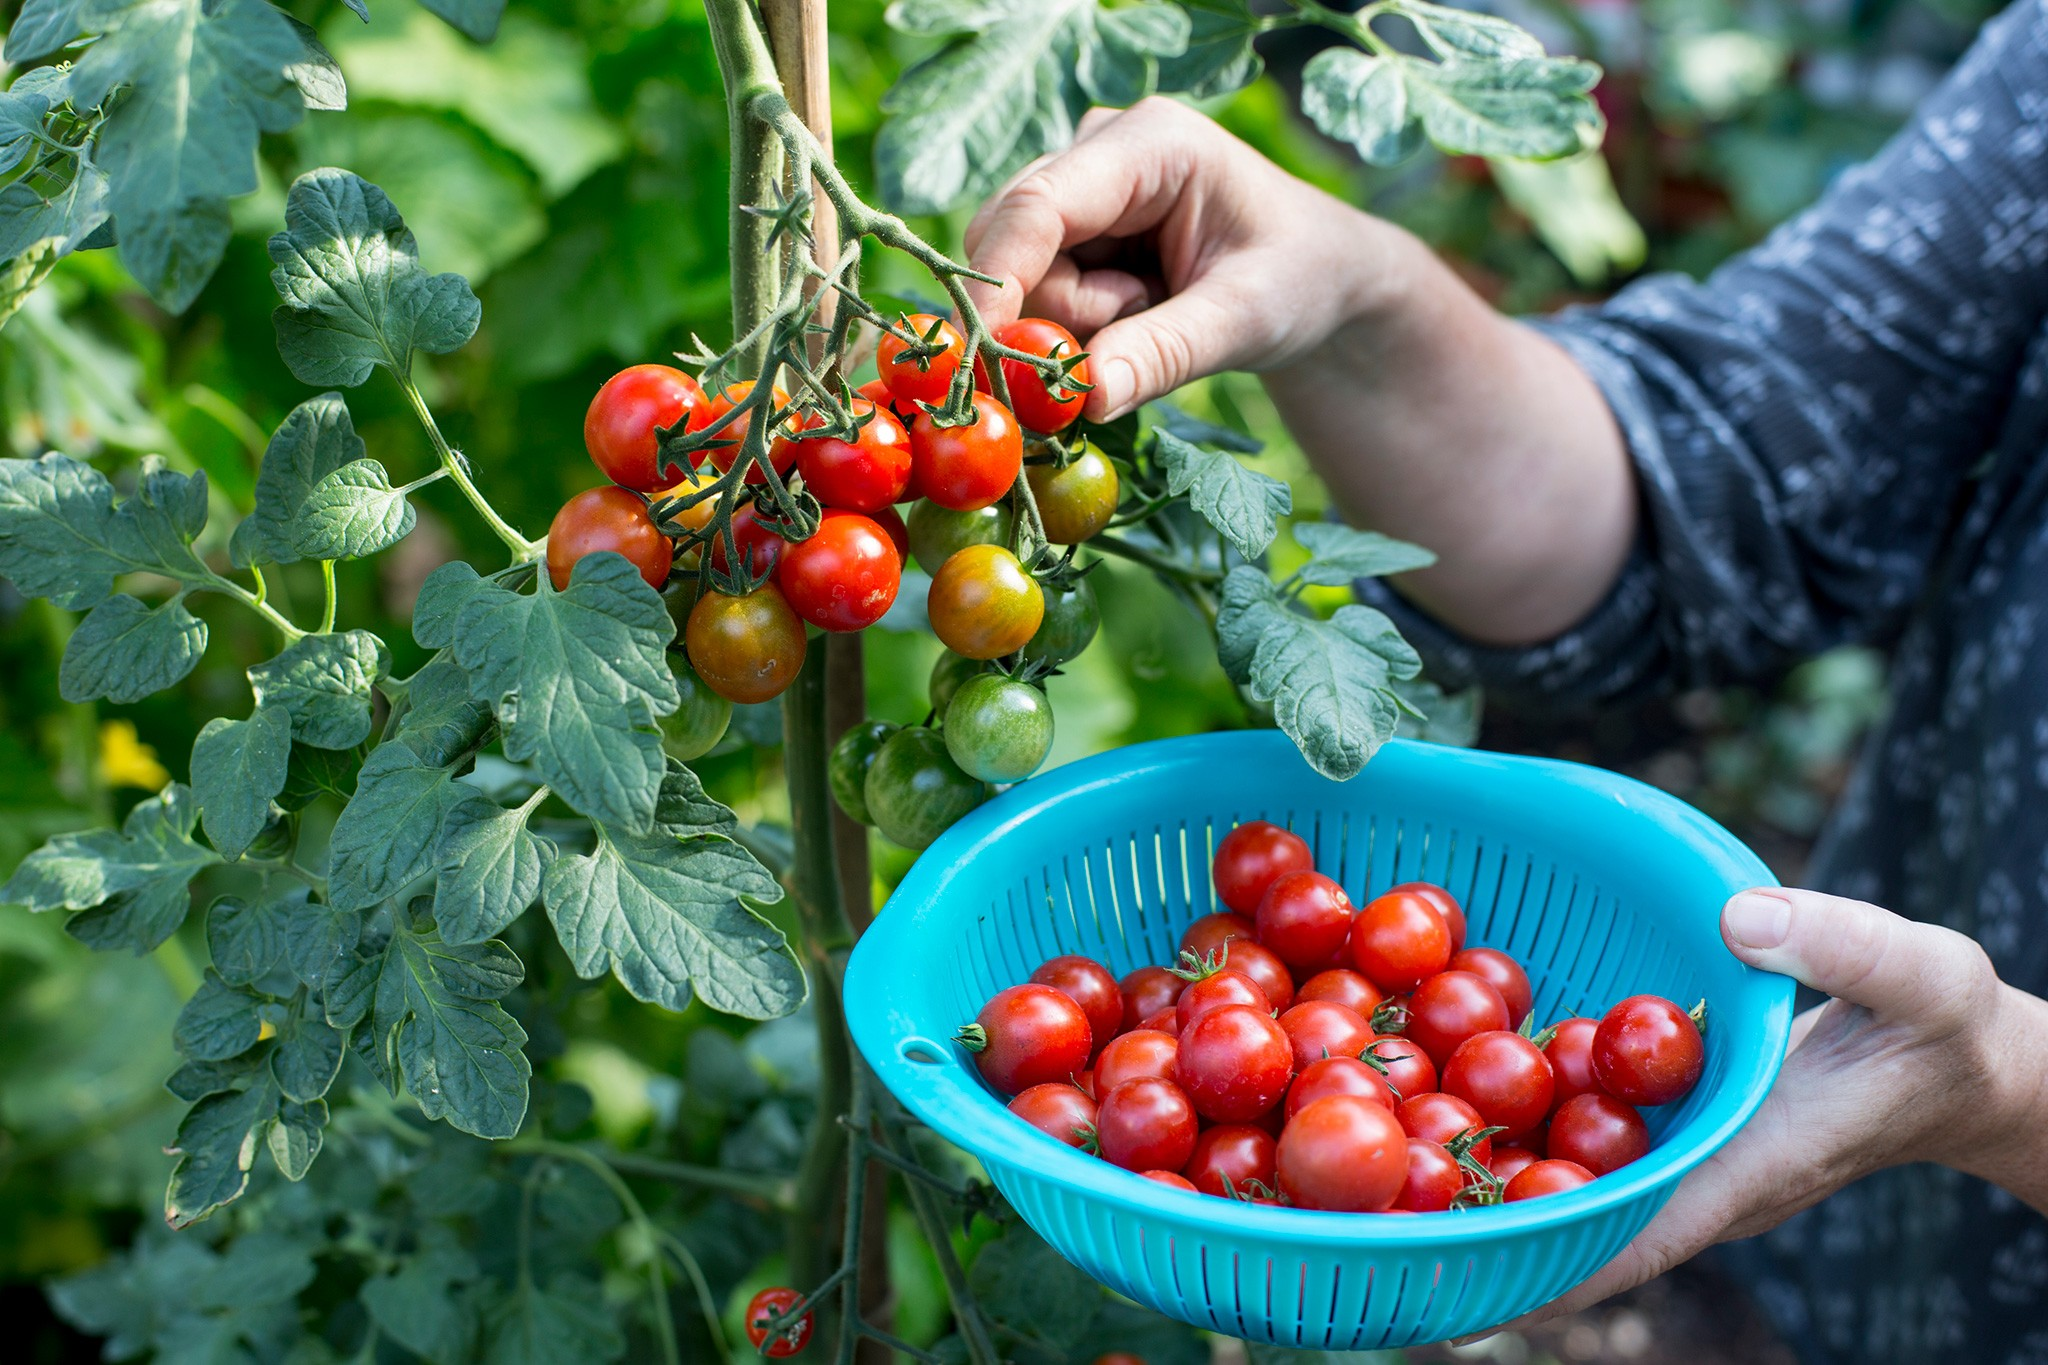 Crops to harvest in September - tomatoes